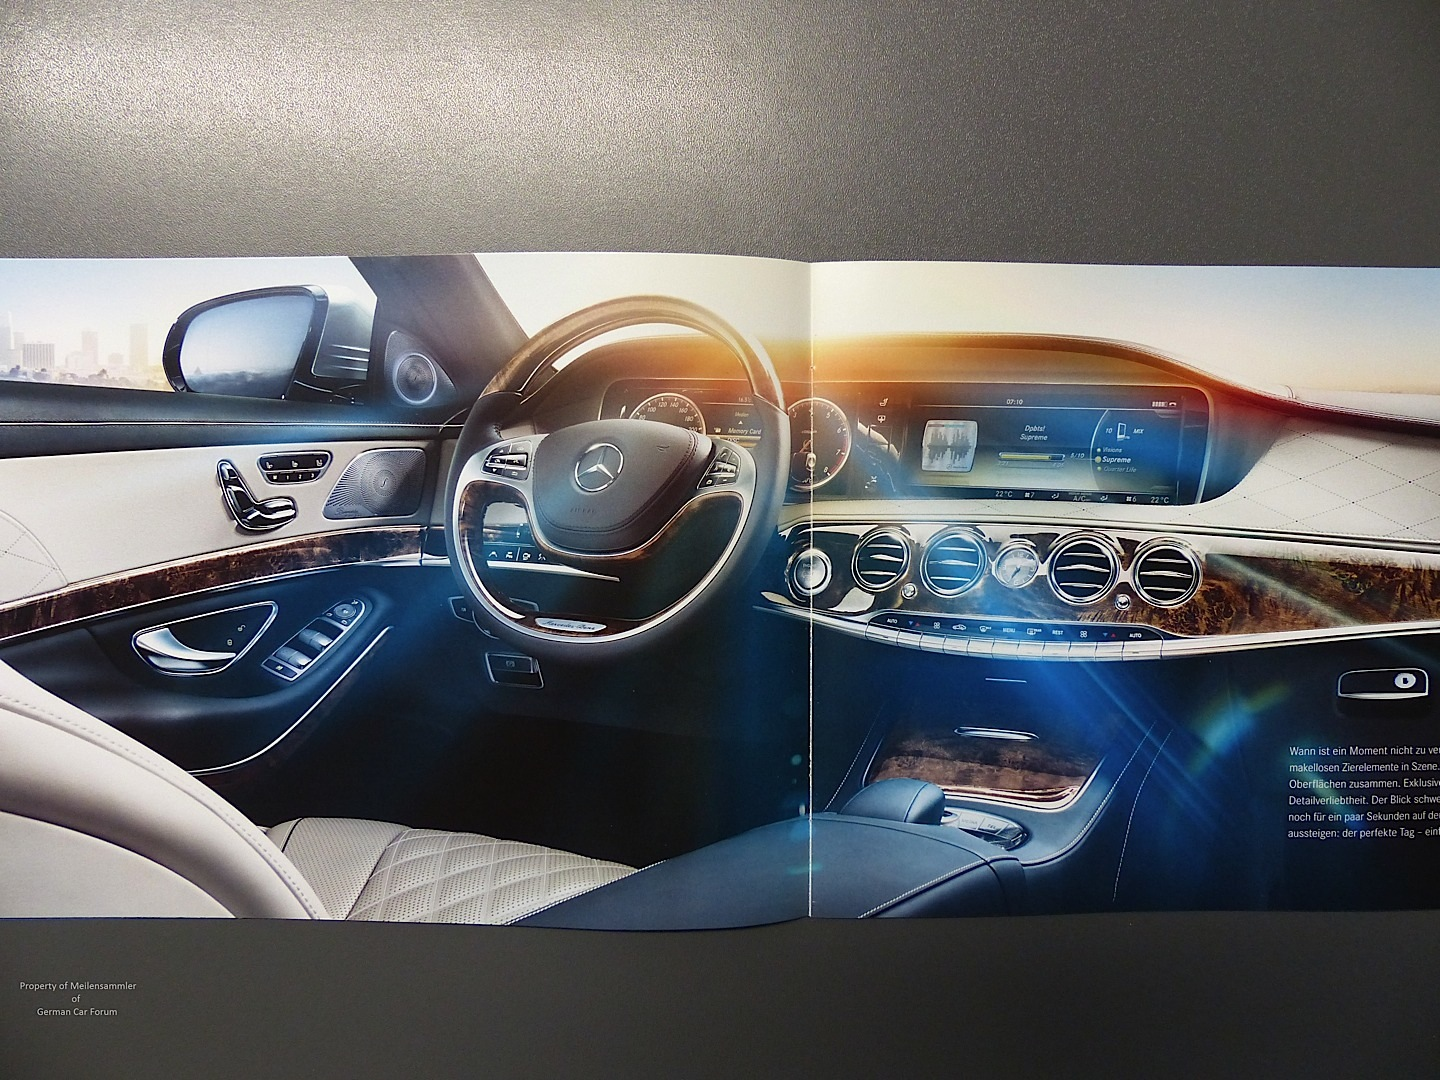 Mercedes benz s class pullman to replace dead maybach in for New mercedes benz s class 2014